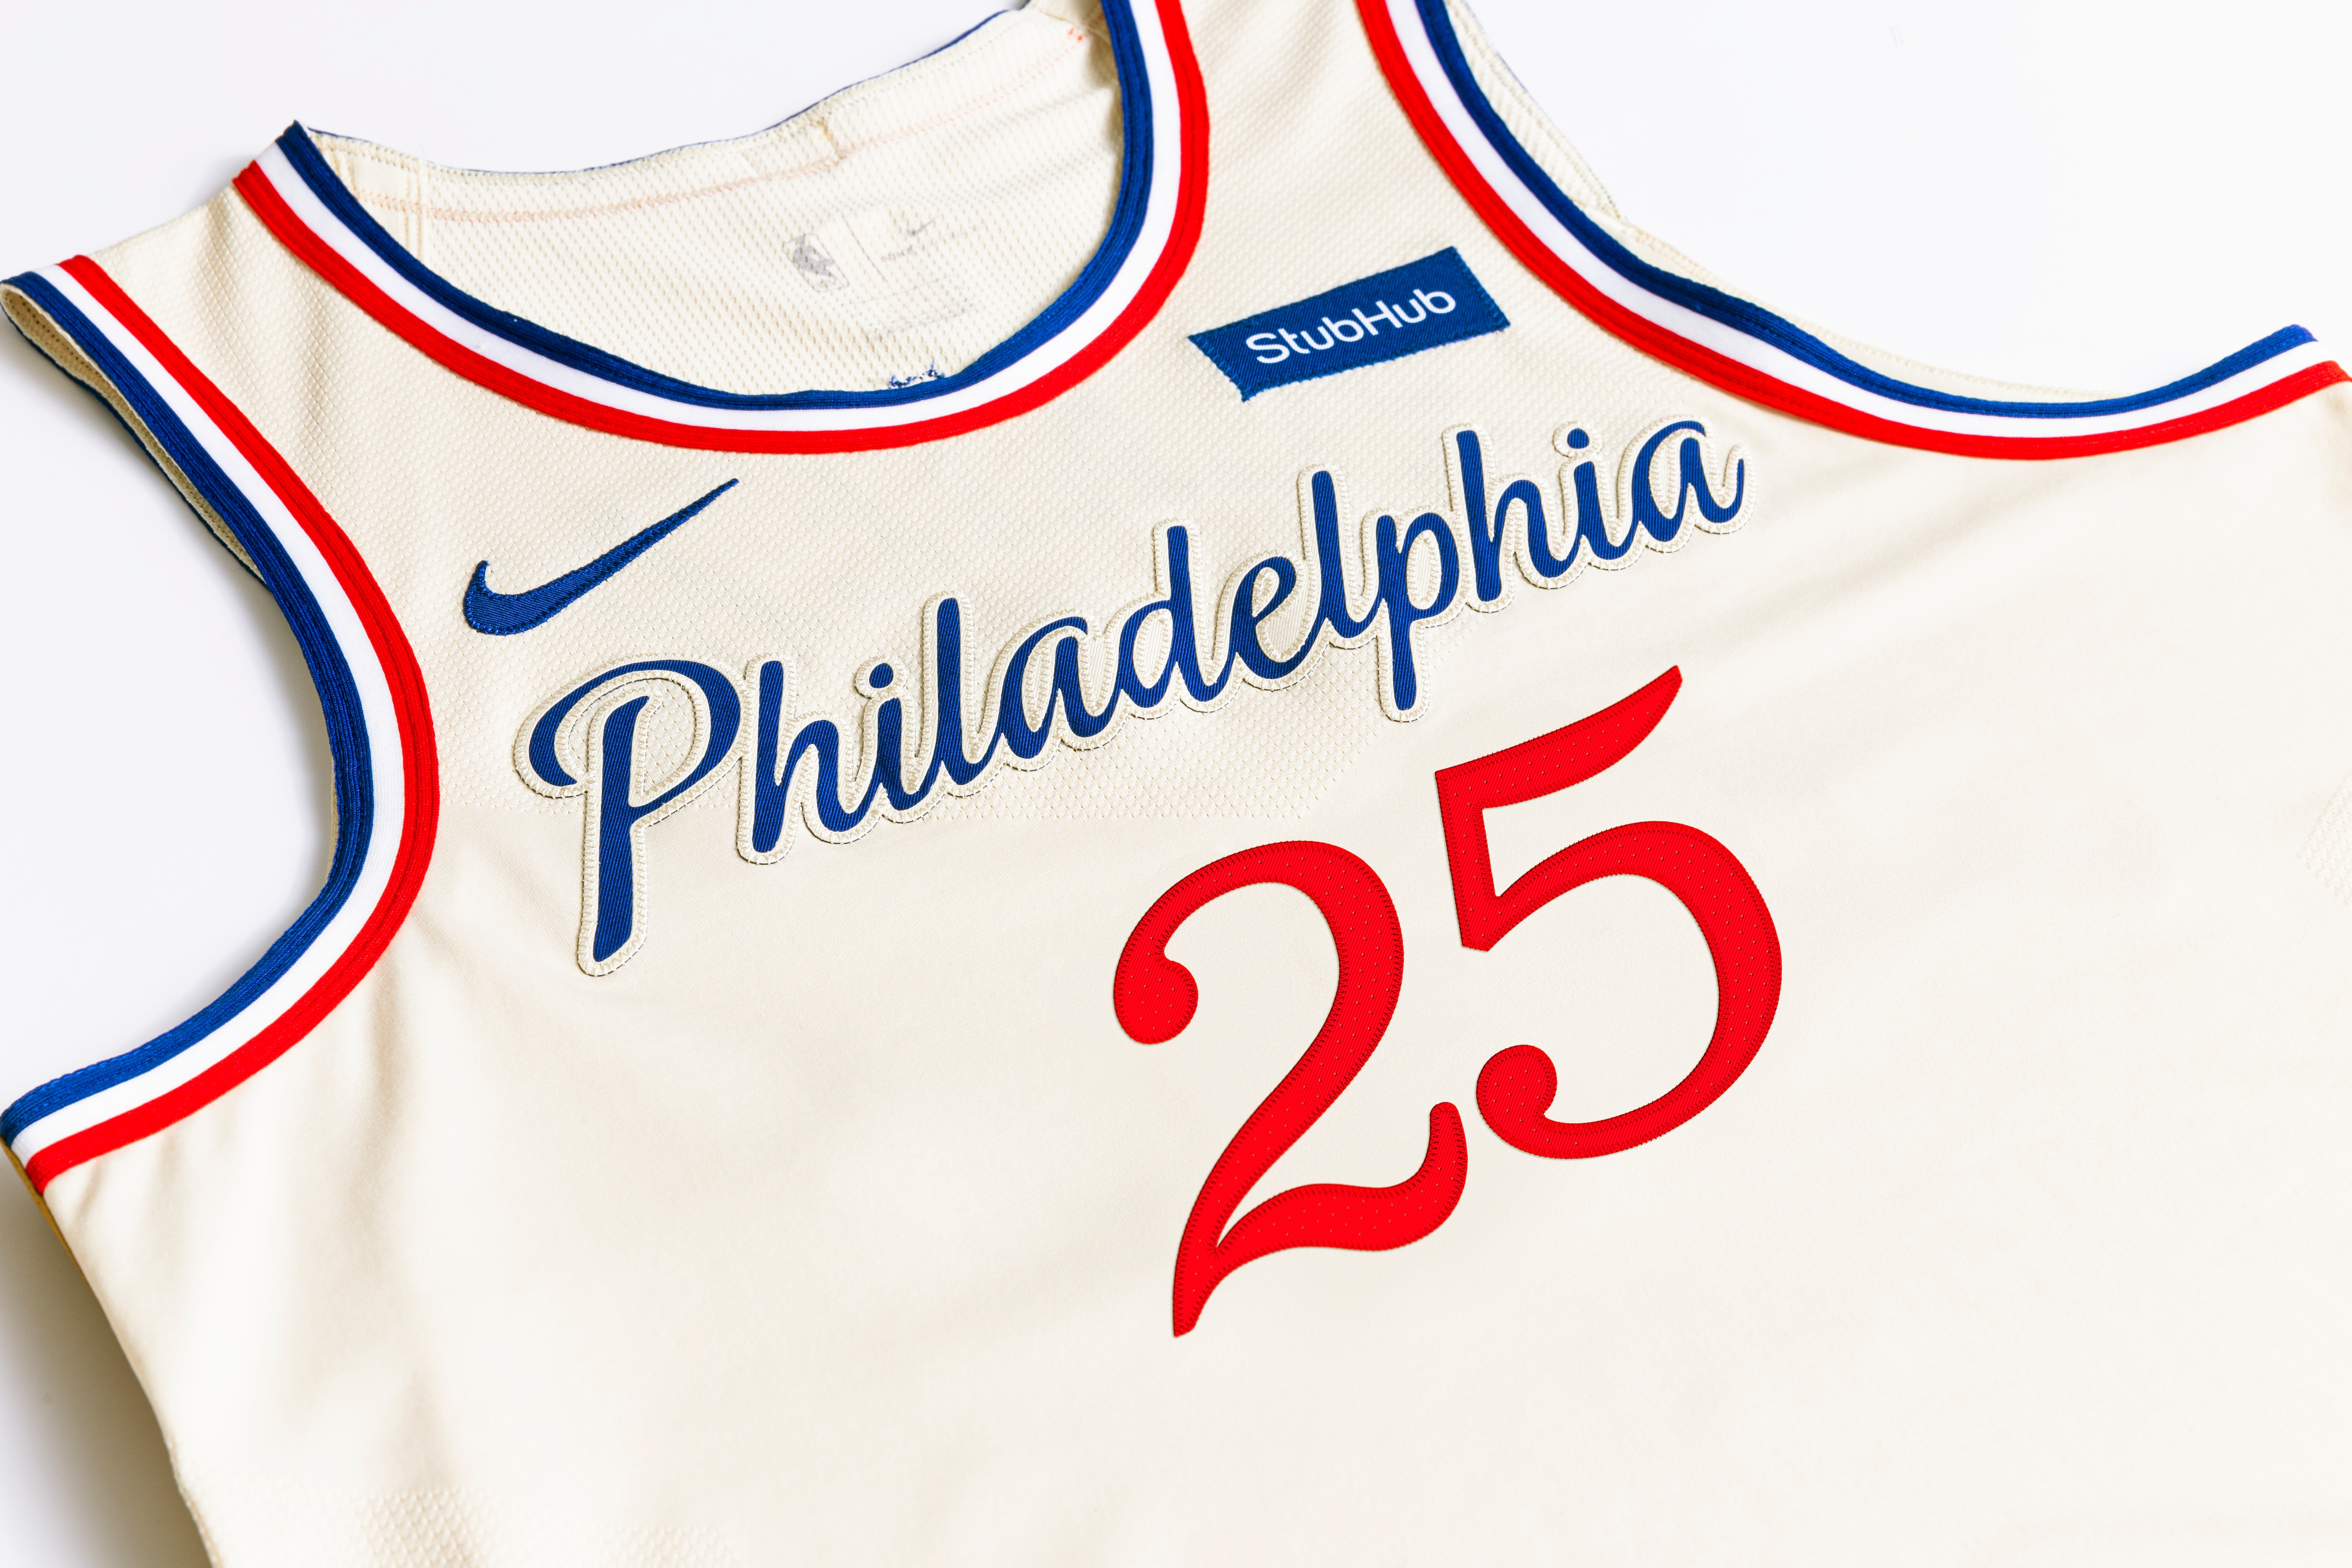 76ers jersey history